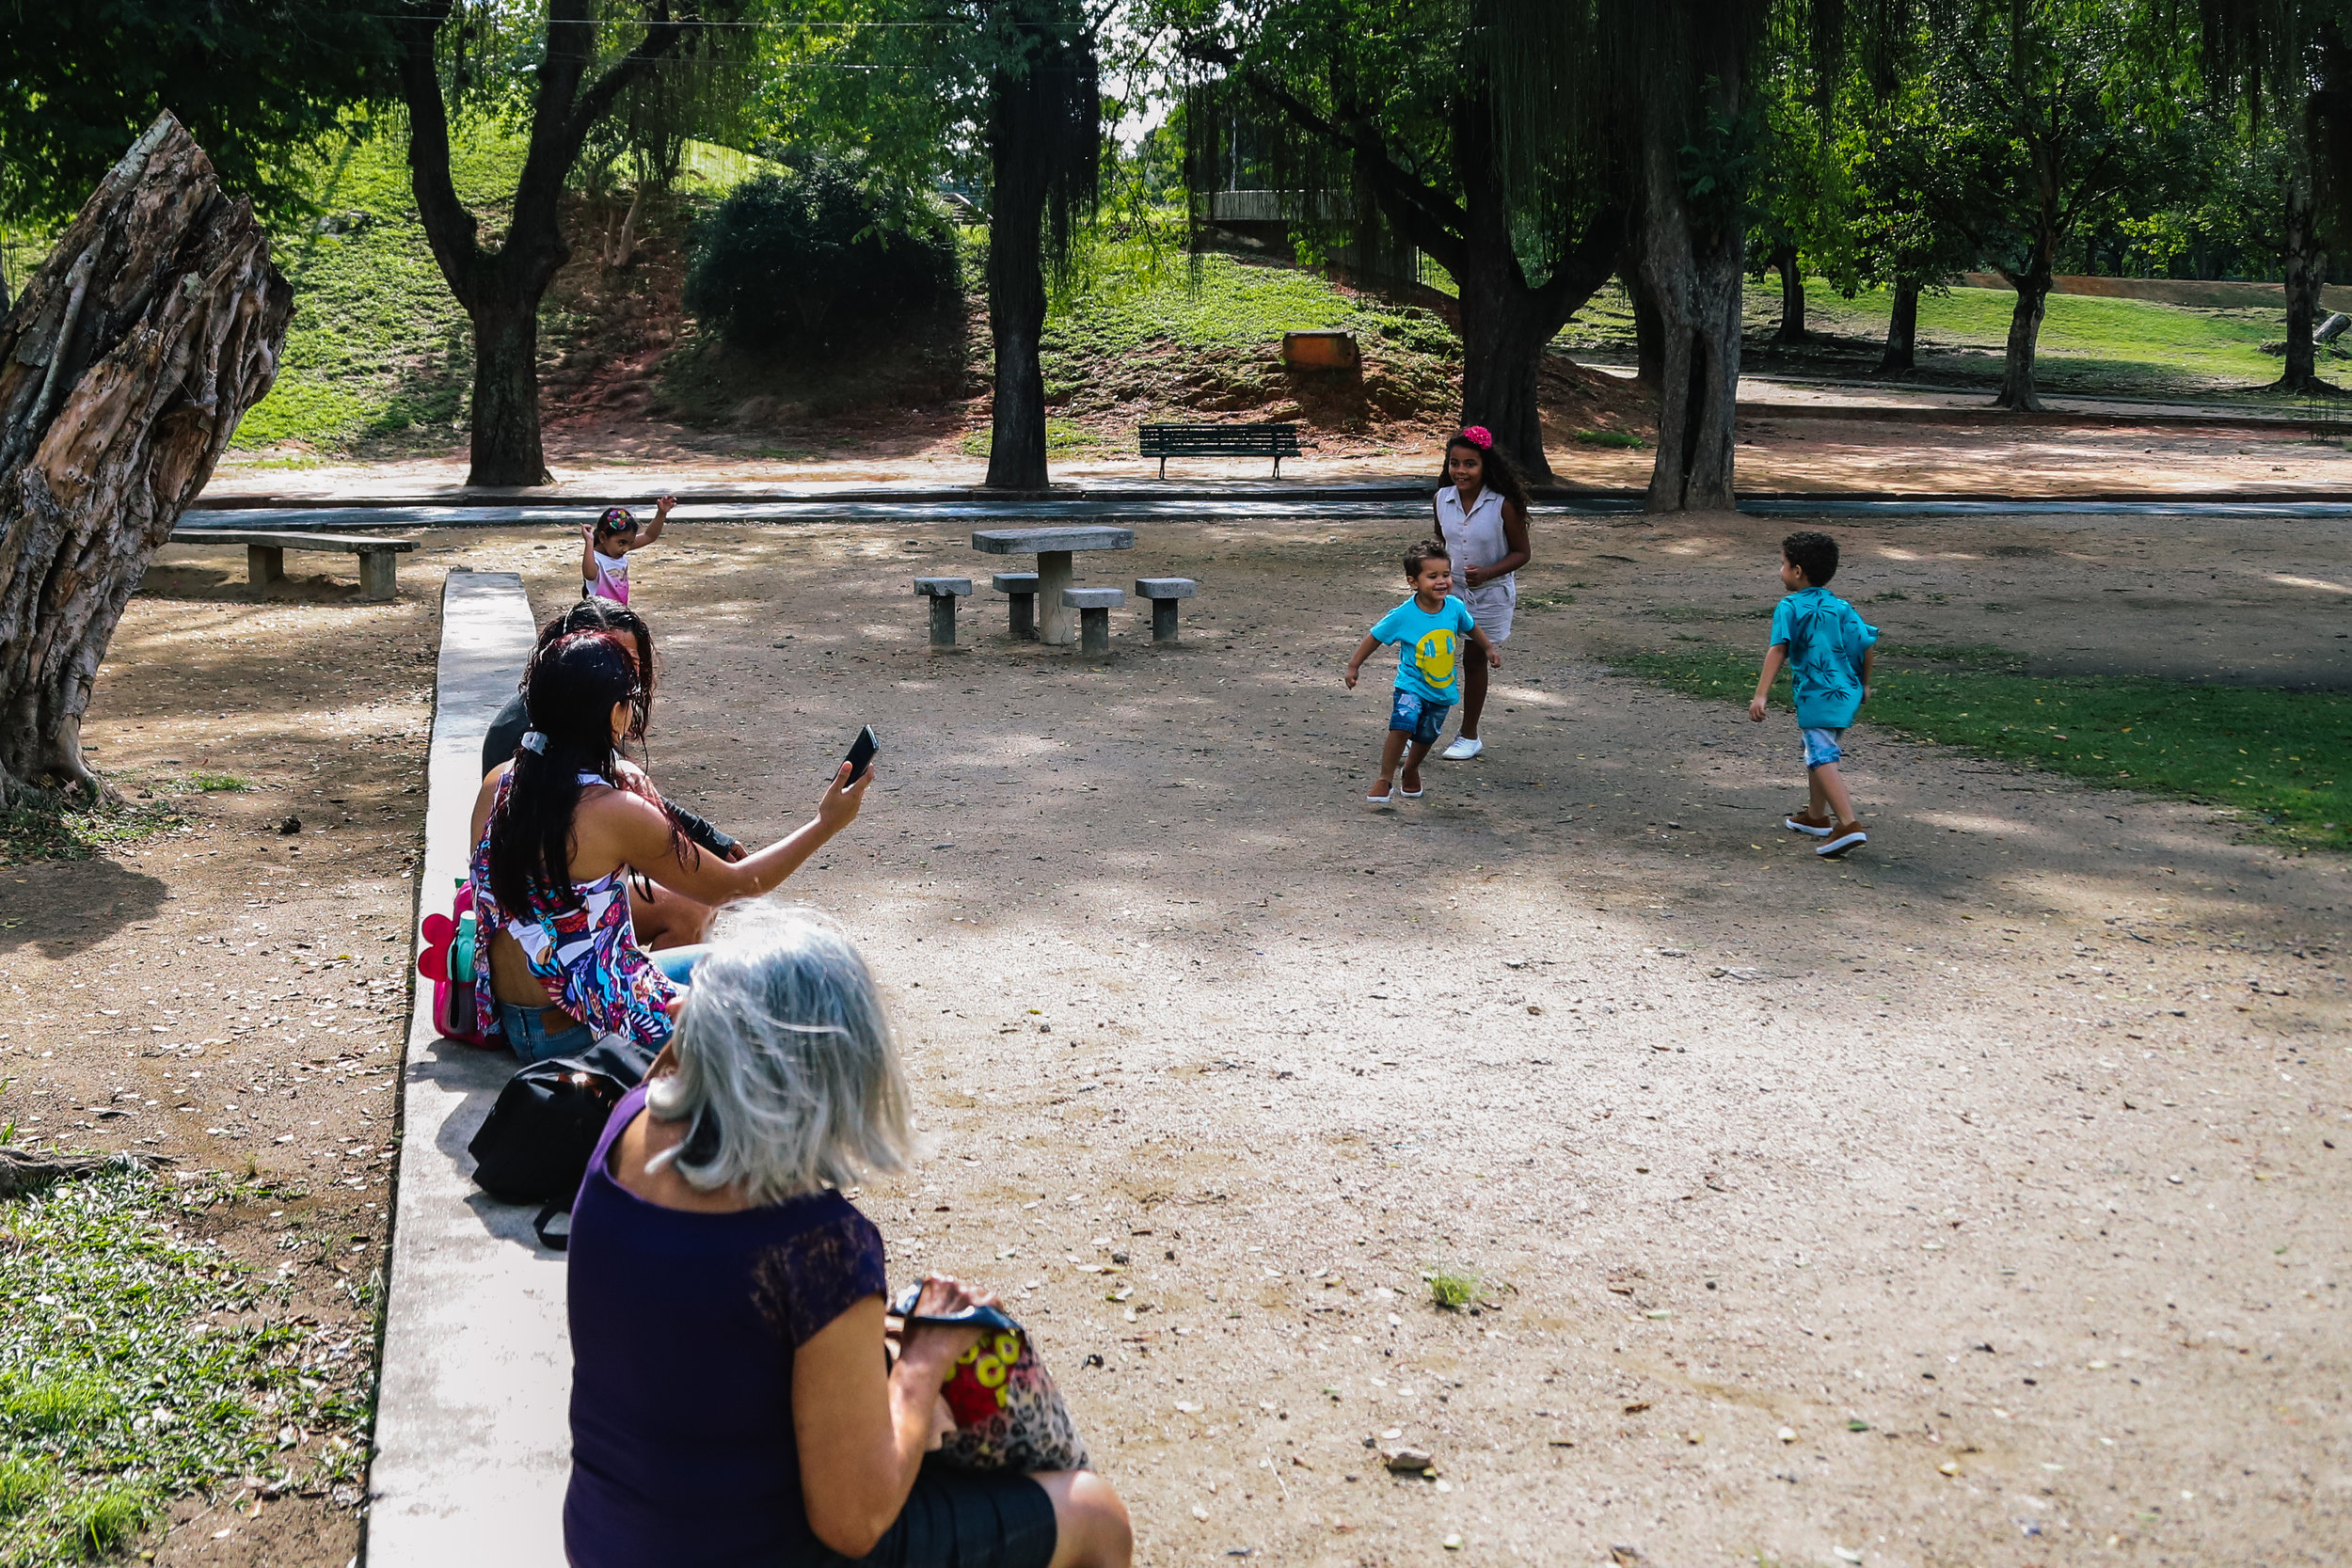 Located in the Park Quinta da Boa Vista, the museum was an intergenerational community space often visited by families and schools. There is currently no reopening date for the museum.